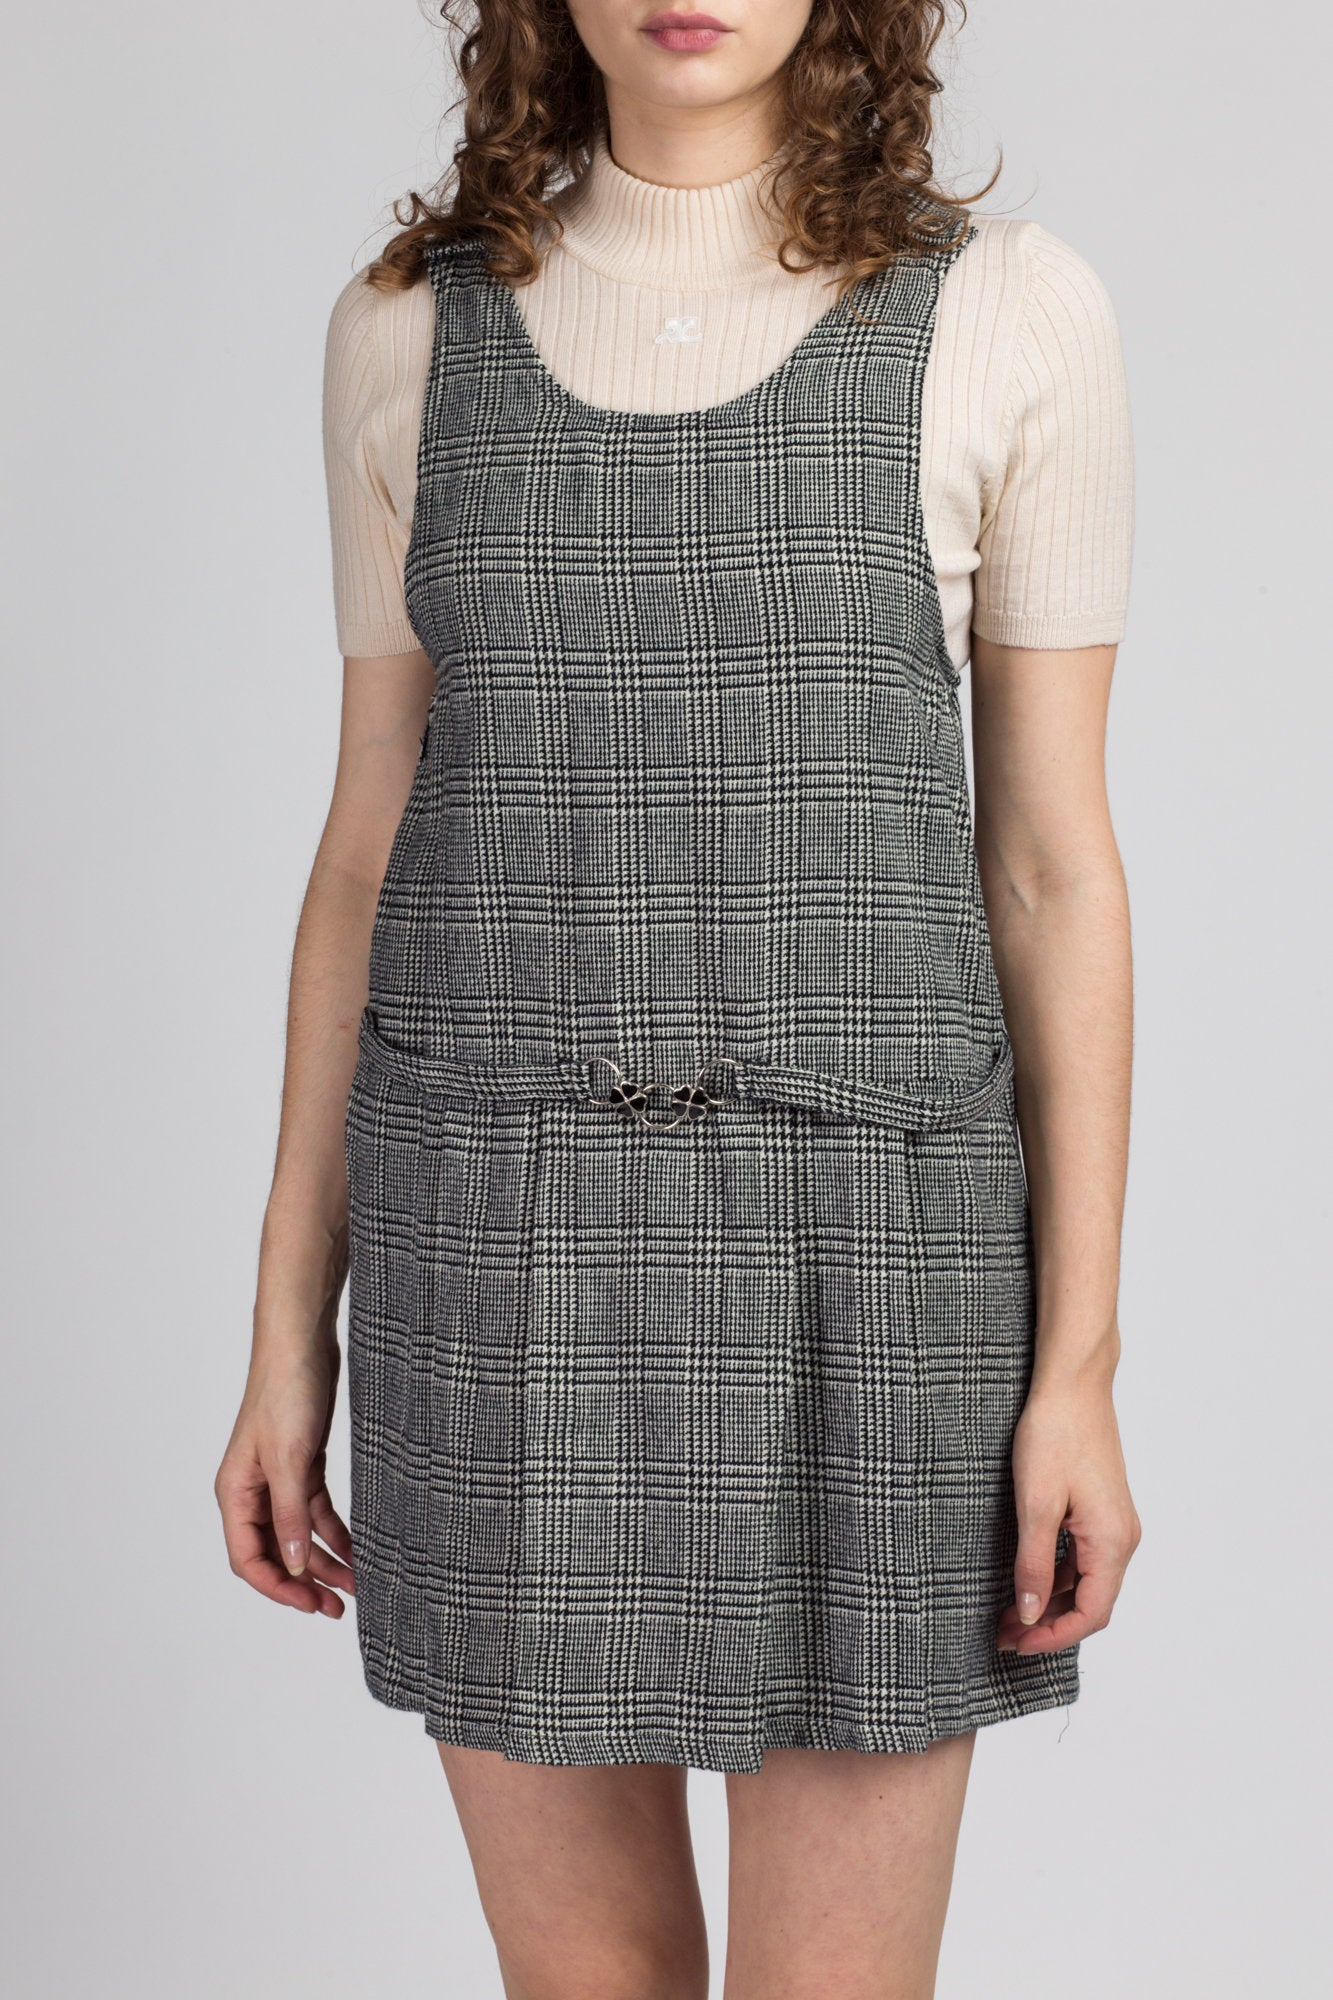 90s Four Leaf Clover Pinafore Mini Dress - Medium